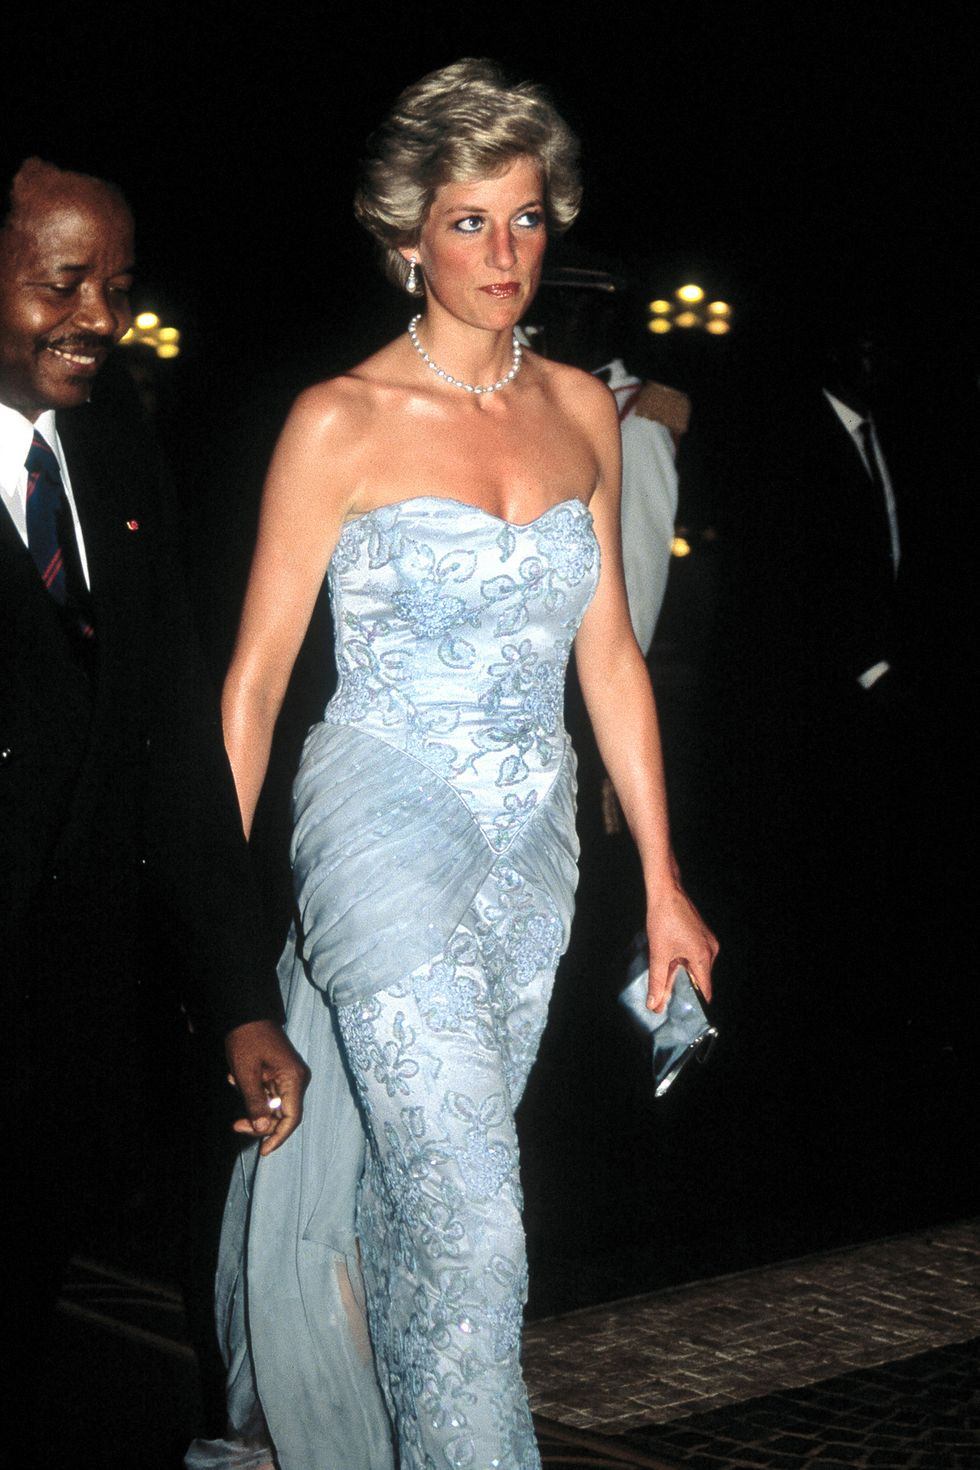 The Princess of Wales arrives at a presidential banquet held in Douala, Cameroon, March 1990. She wears a Catherine Walker dress. (Photo by Jayne Fincher/Princess Diana Archive/Getty Images)